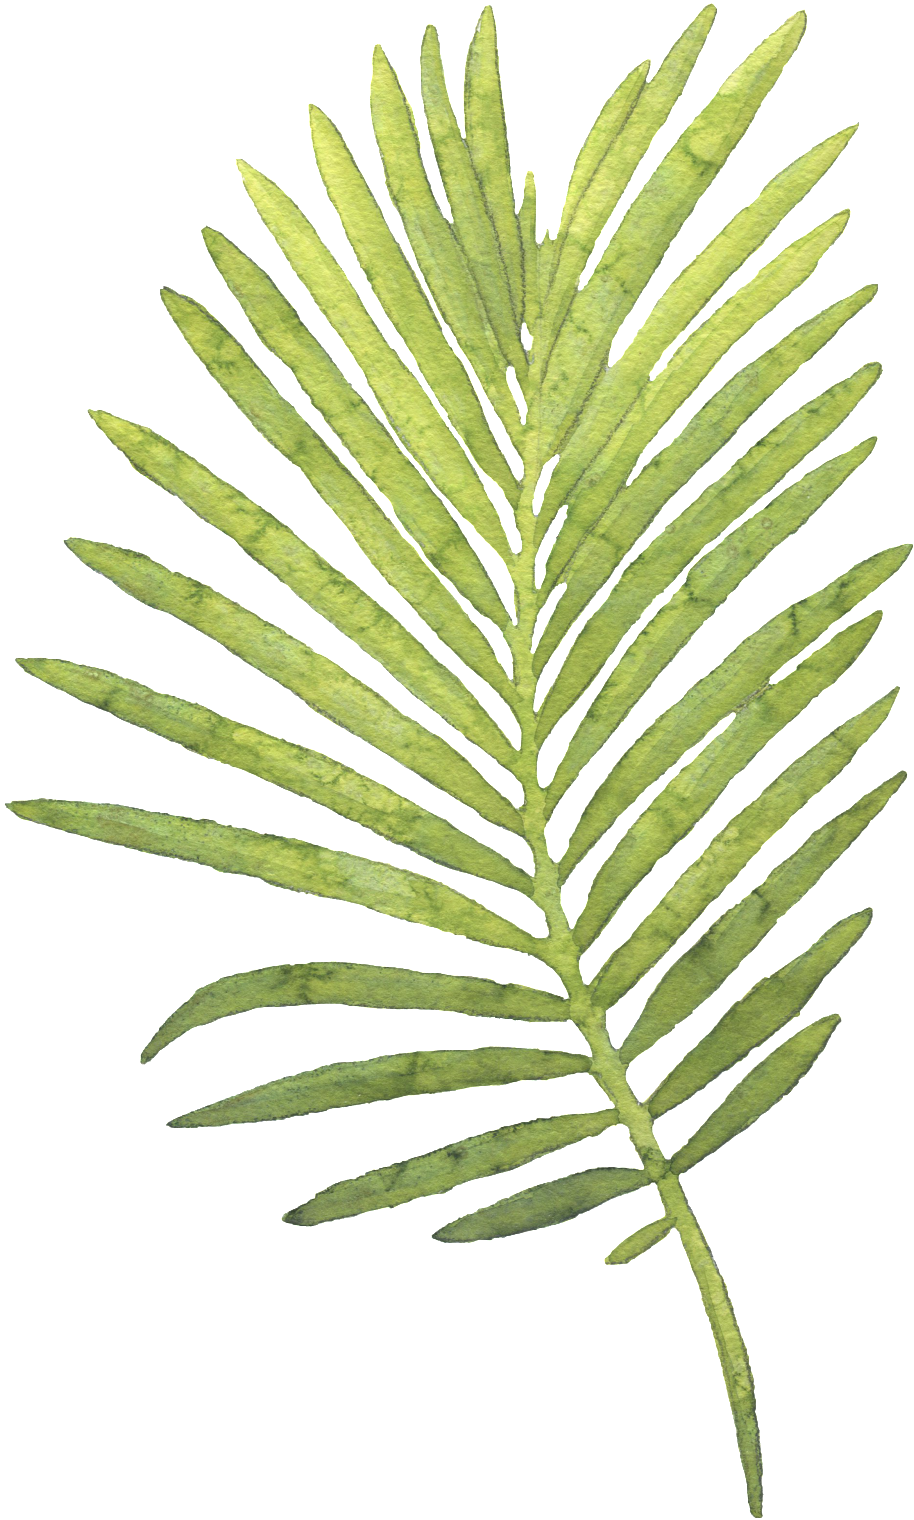 Watercolor palm leaves png. Download large piece of